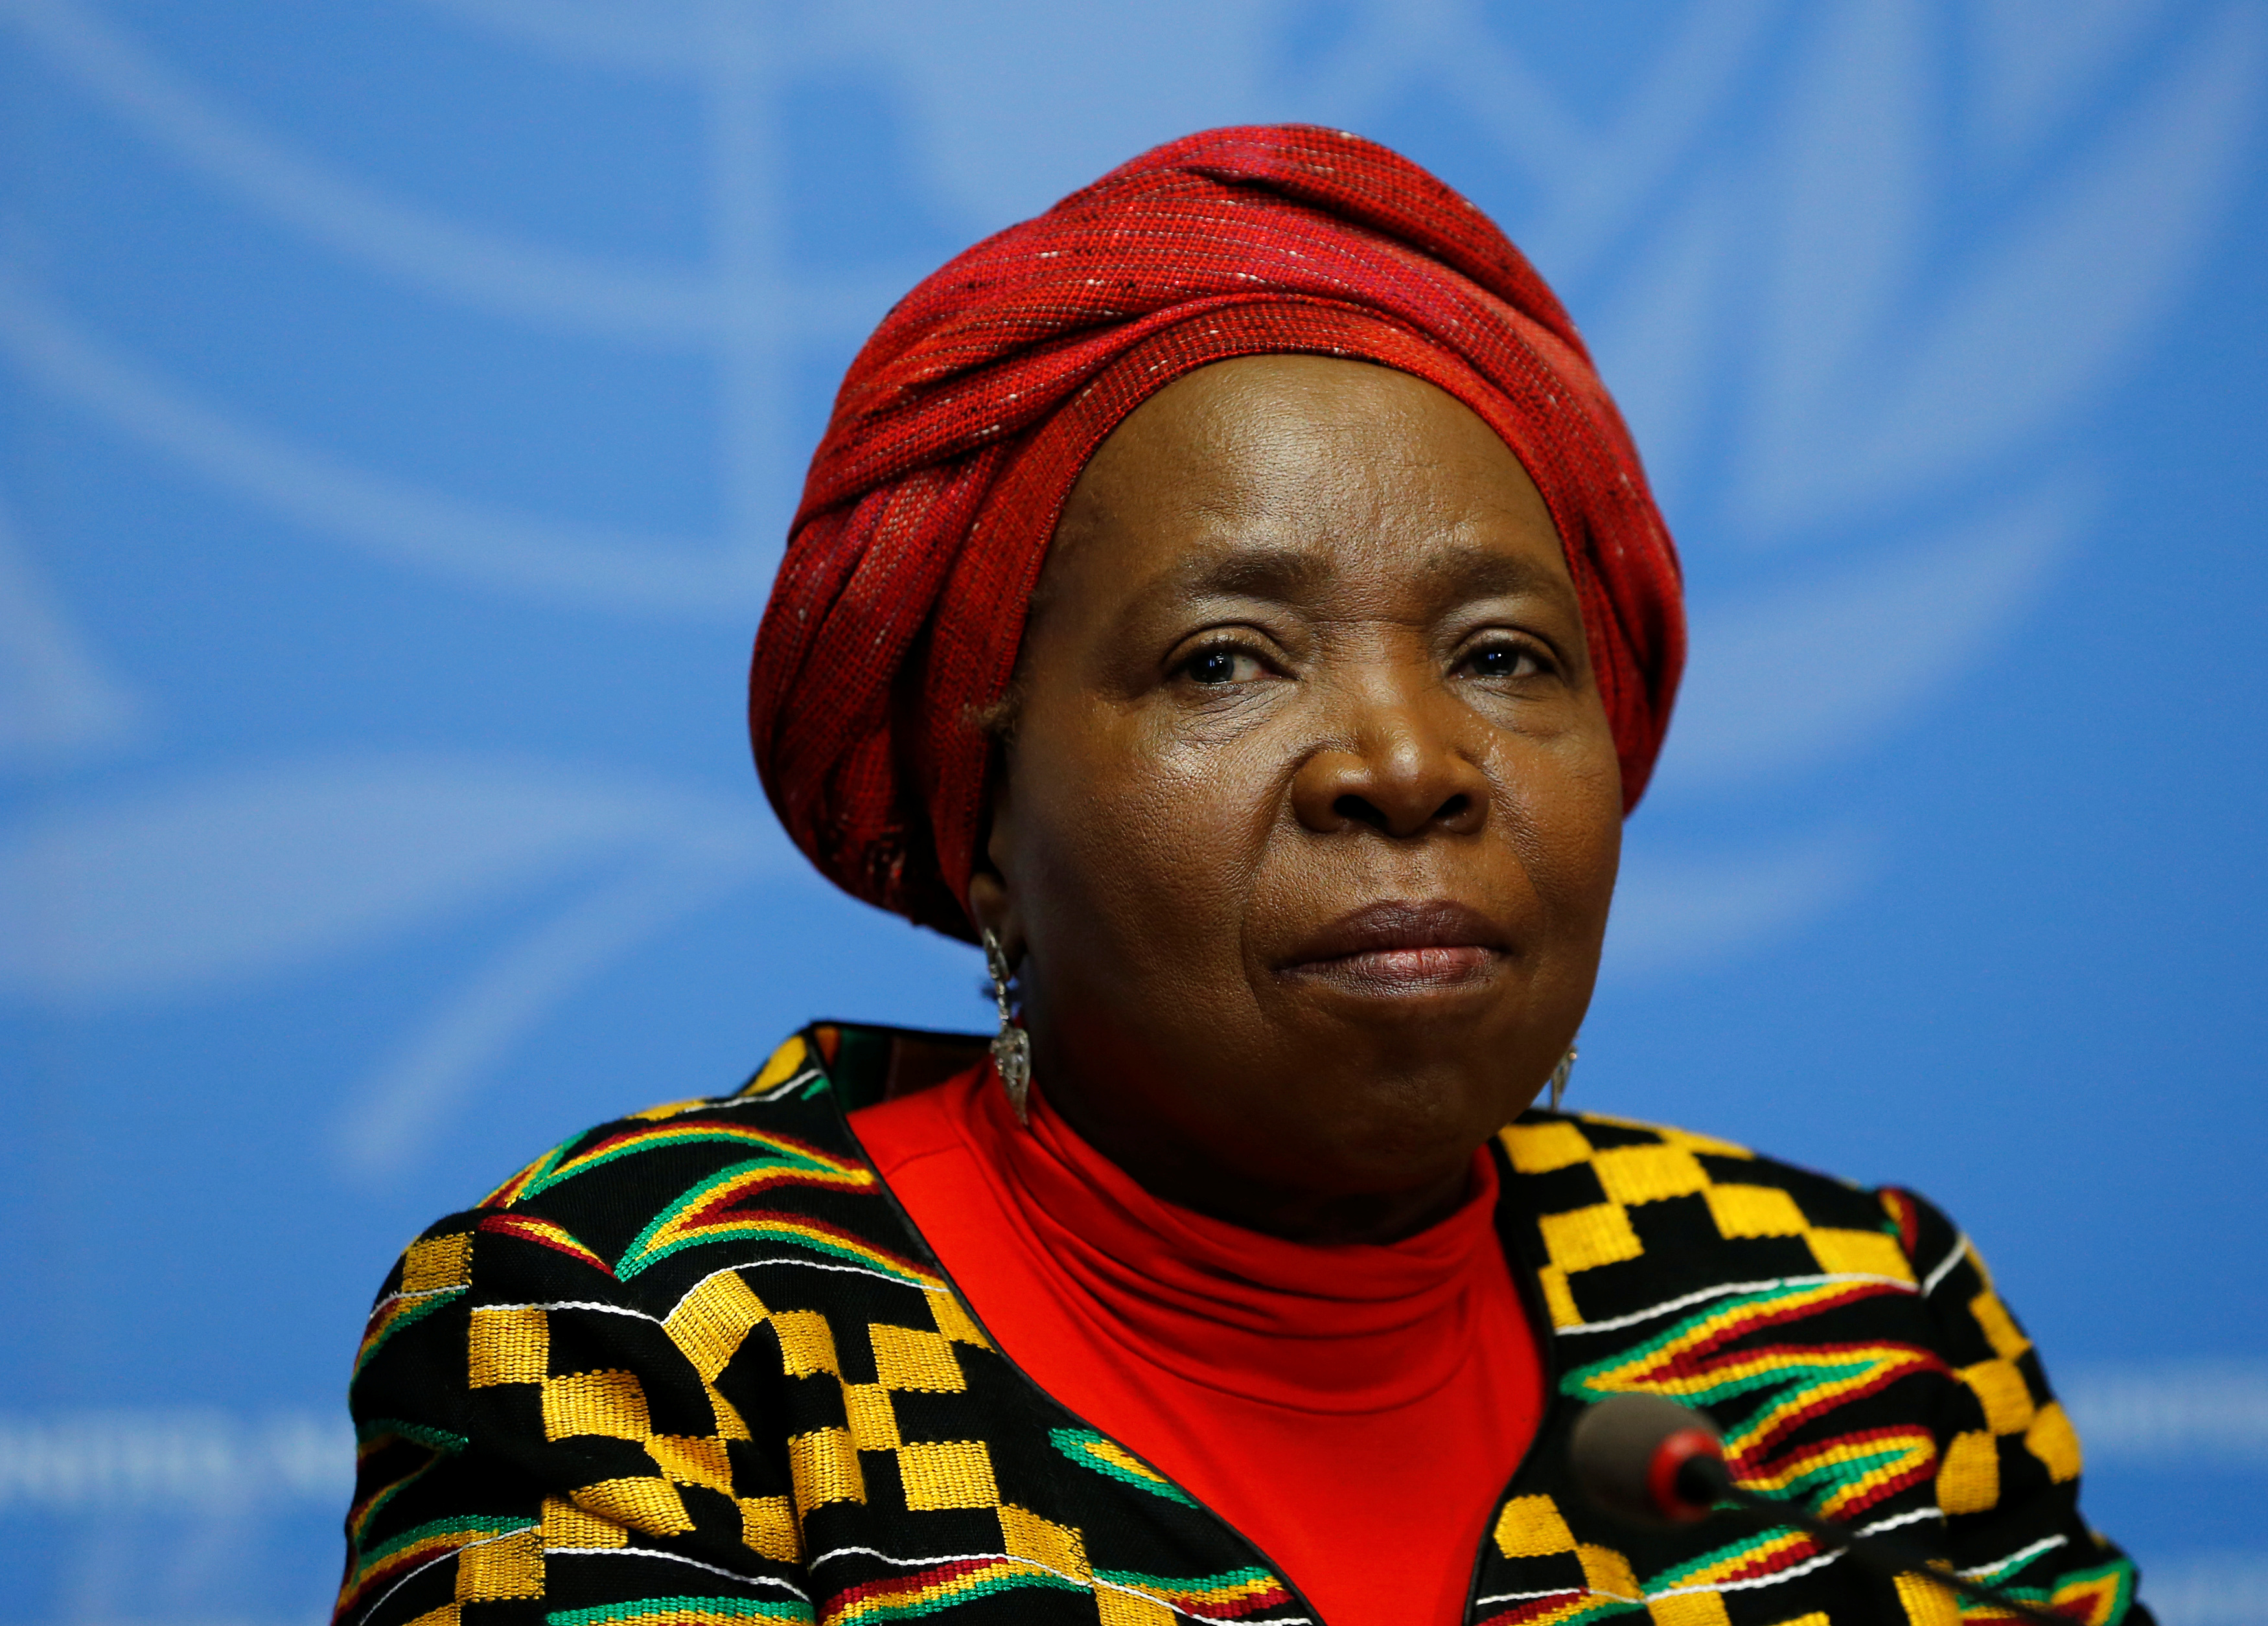 Nkosazana Clarice Dlamini-Zuma, African Union Commission Chairperson and former South African Minister of Health, Minister of Foreign Affairs, and Minister of Home Affairs attends a news conference.